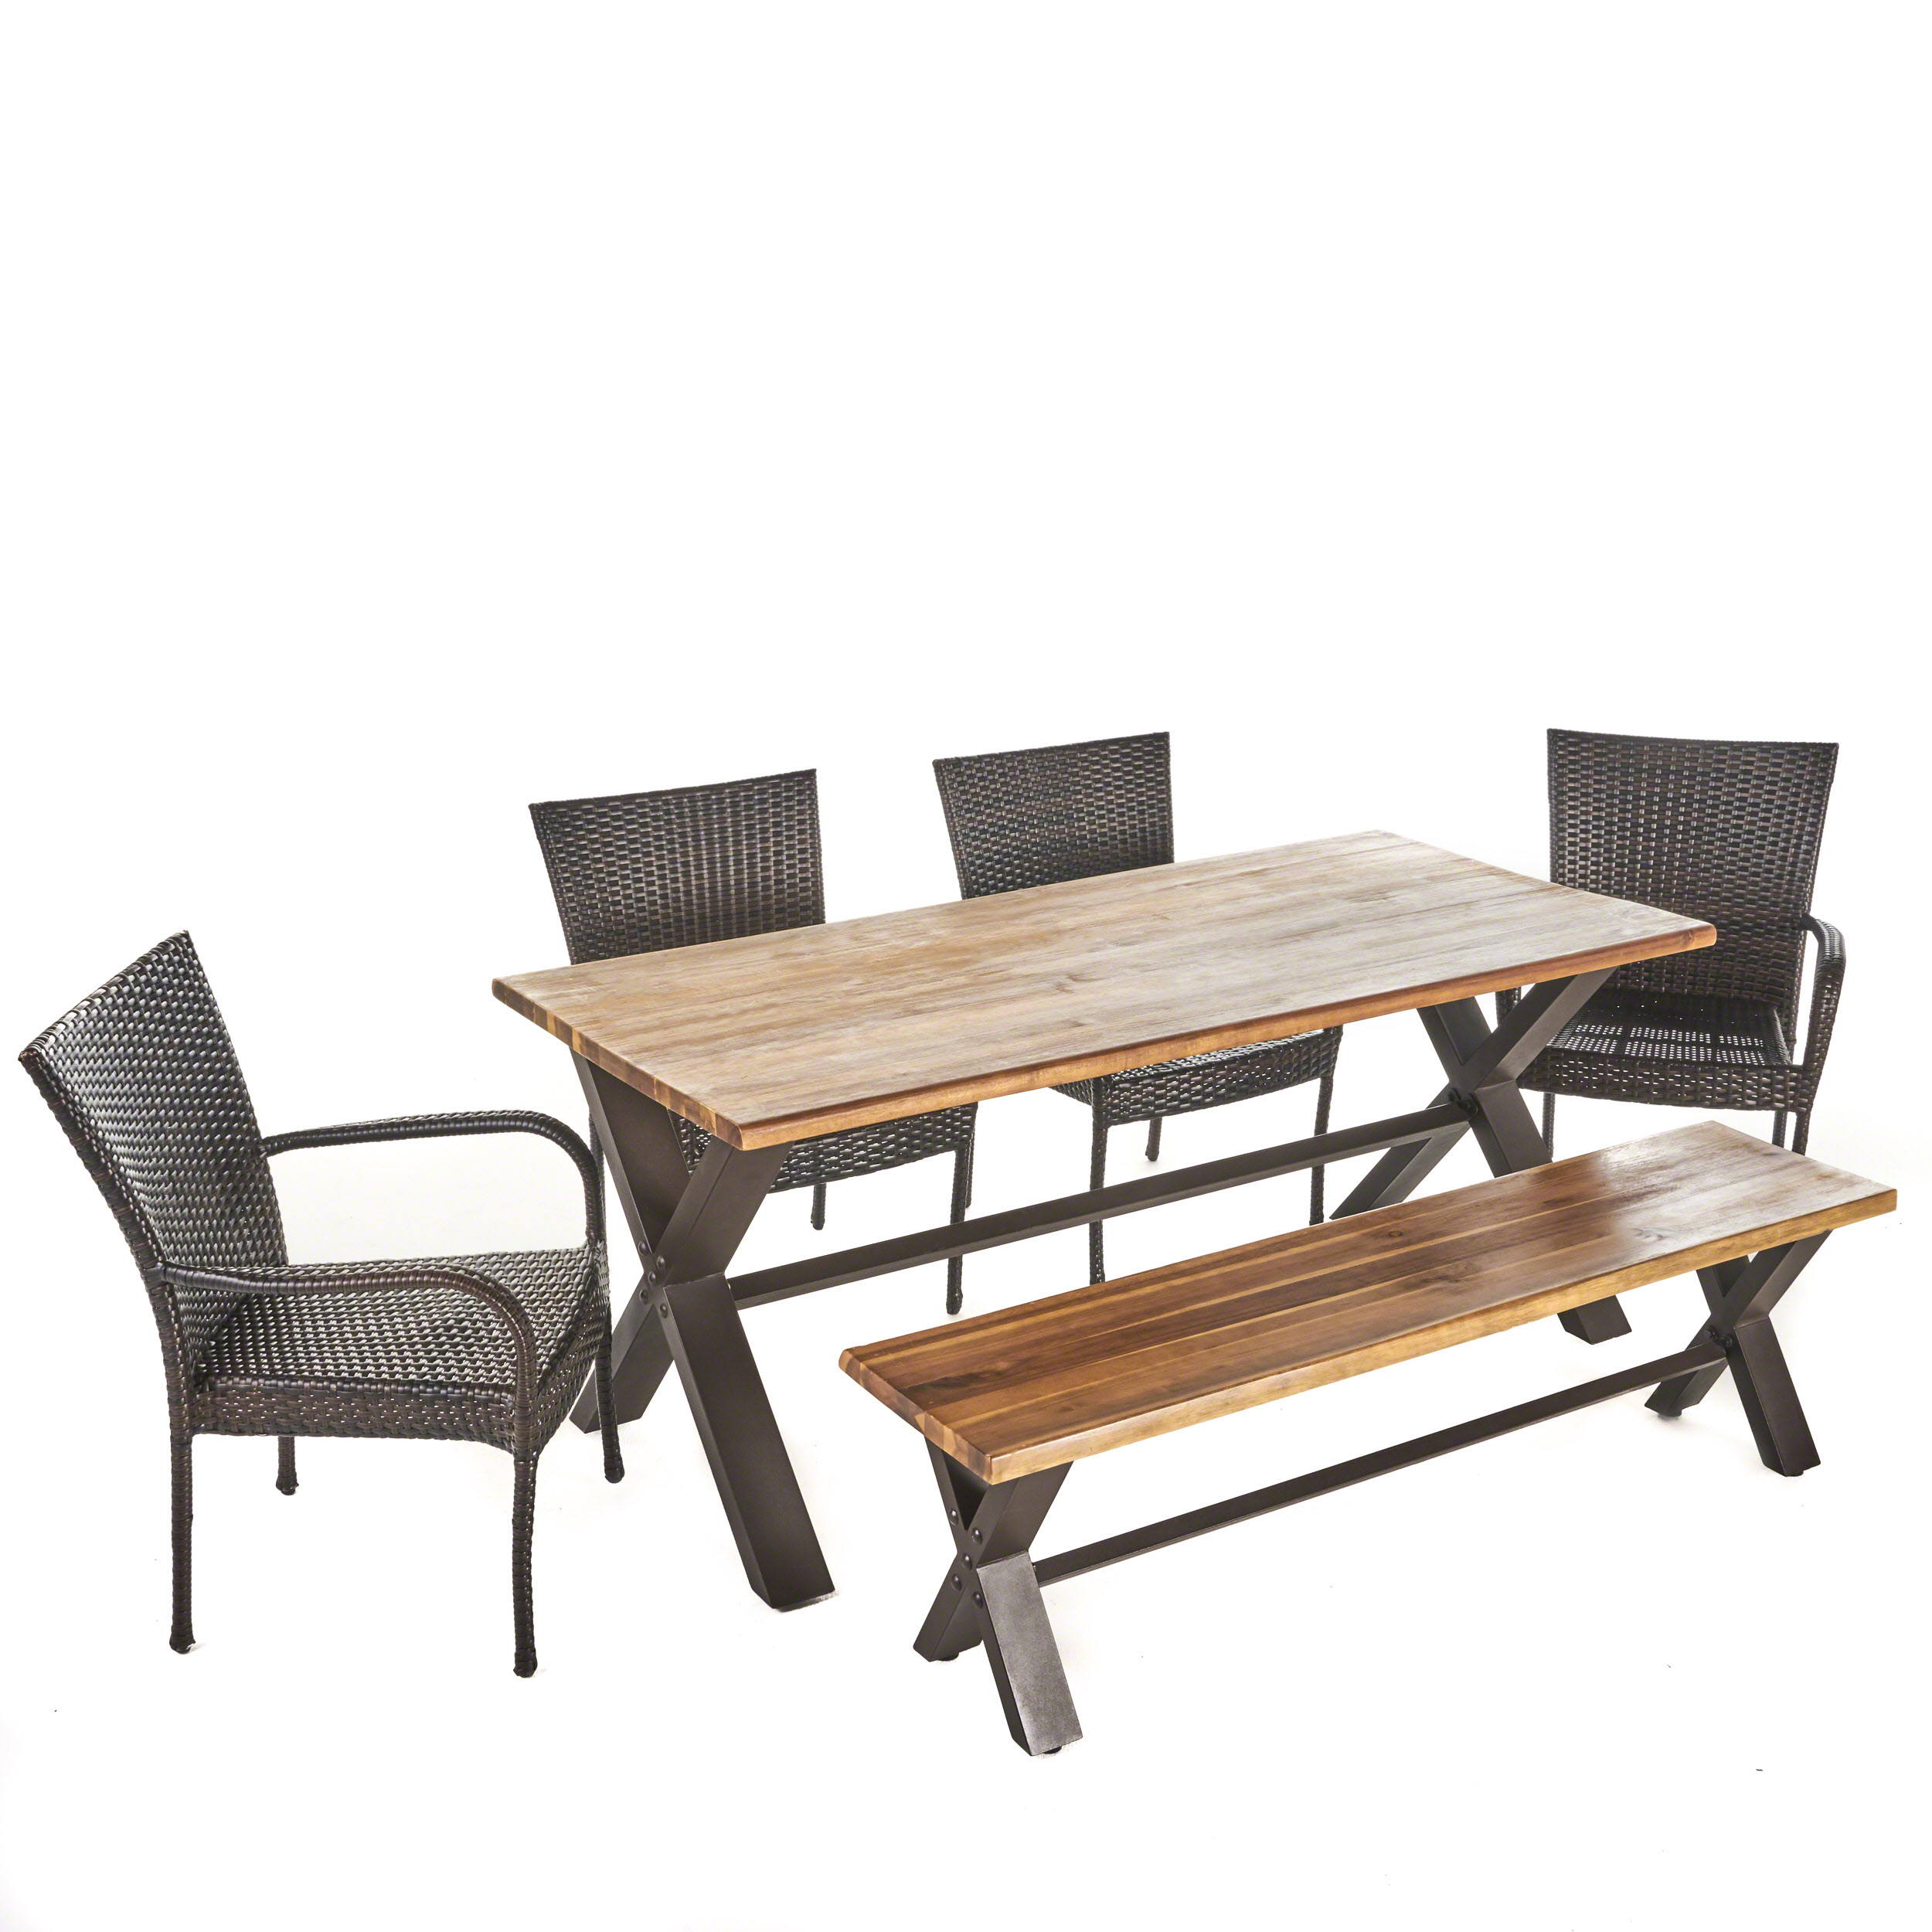 Bula Outdoor 6 Piece Acacia Wood Dining Set with Wicker Stacking Chairs, Teak Finish